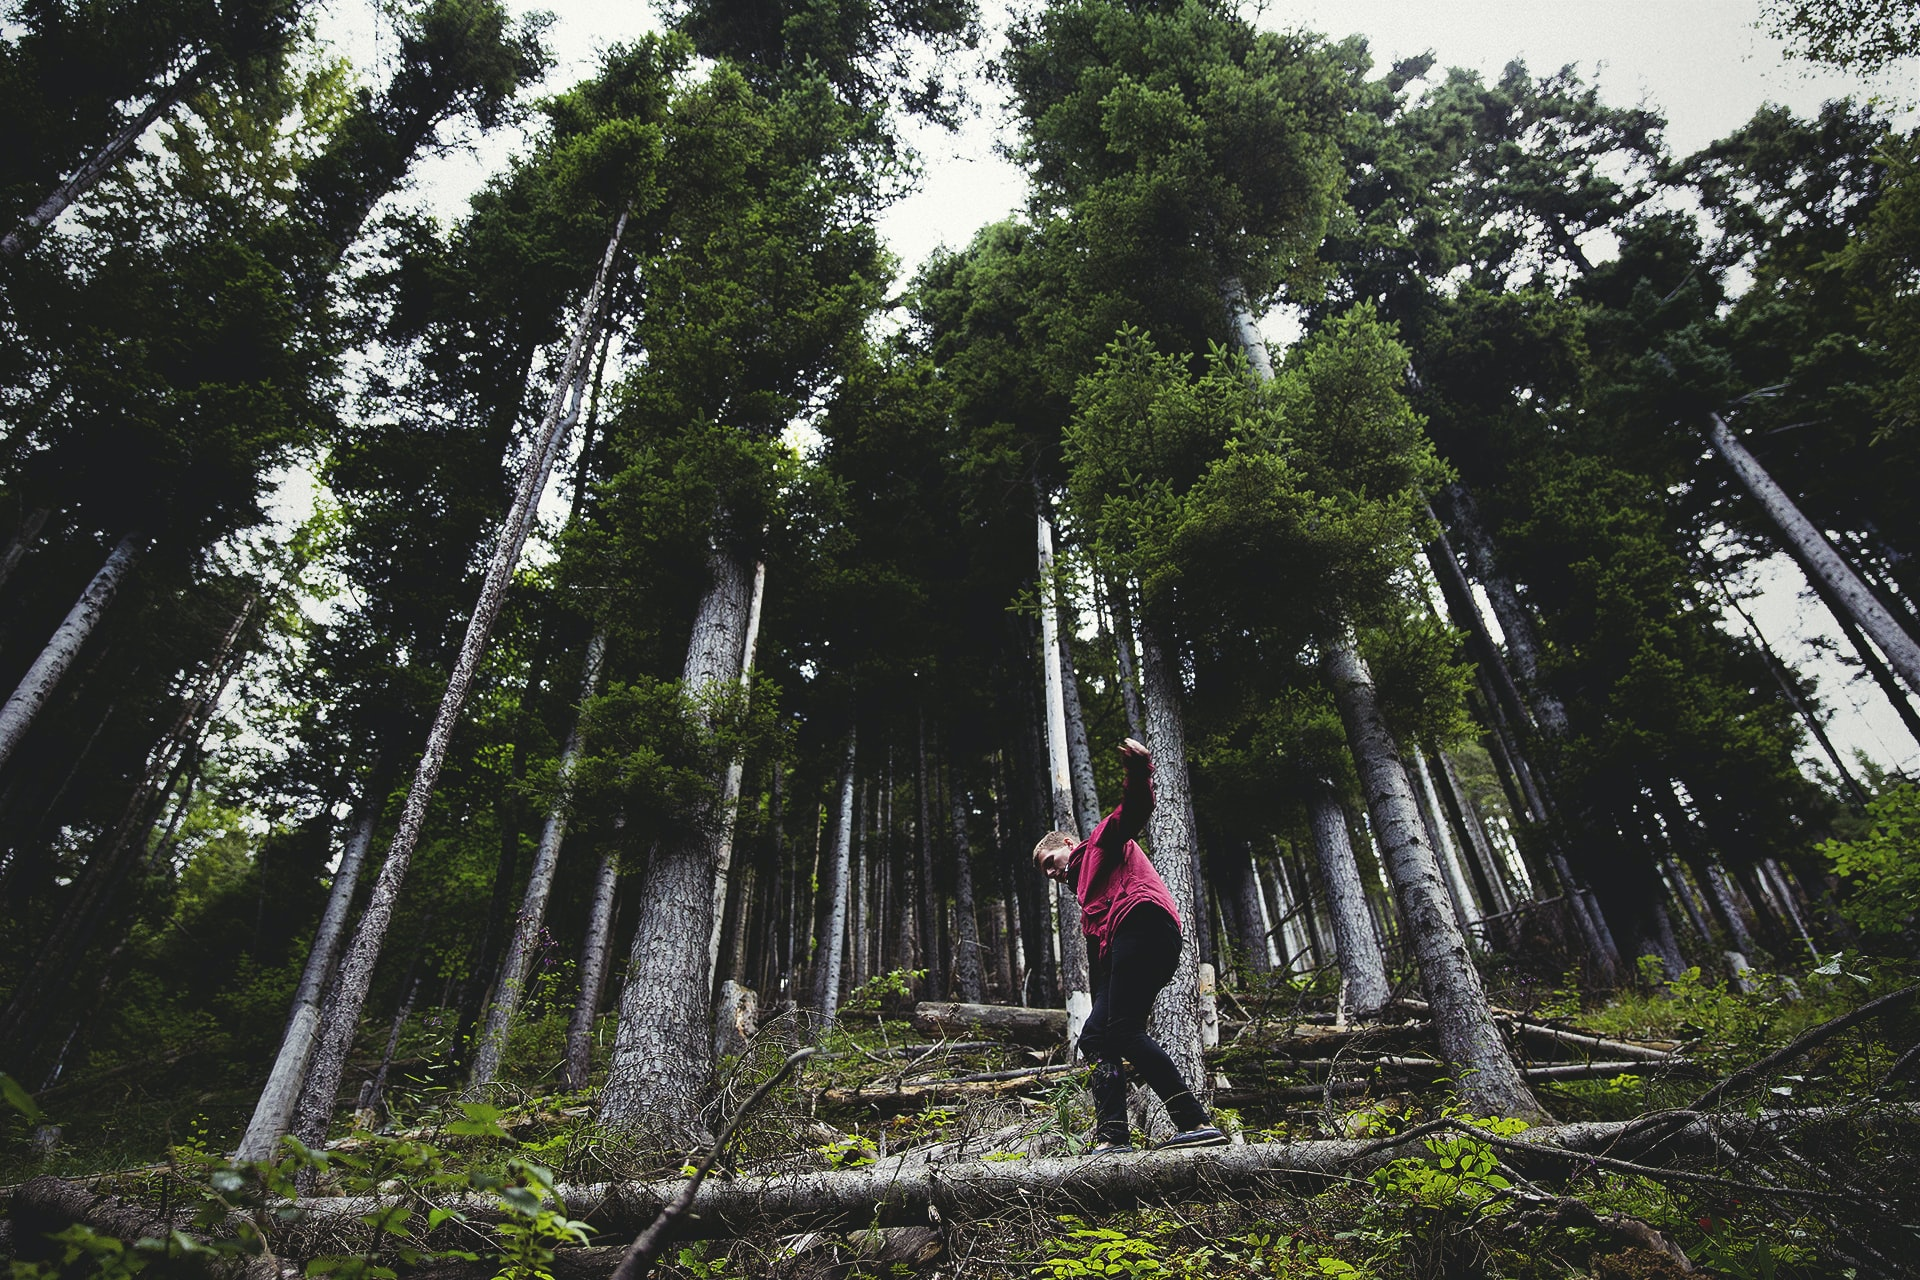 A man walking across a tree in the middle of a forest